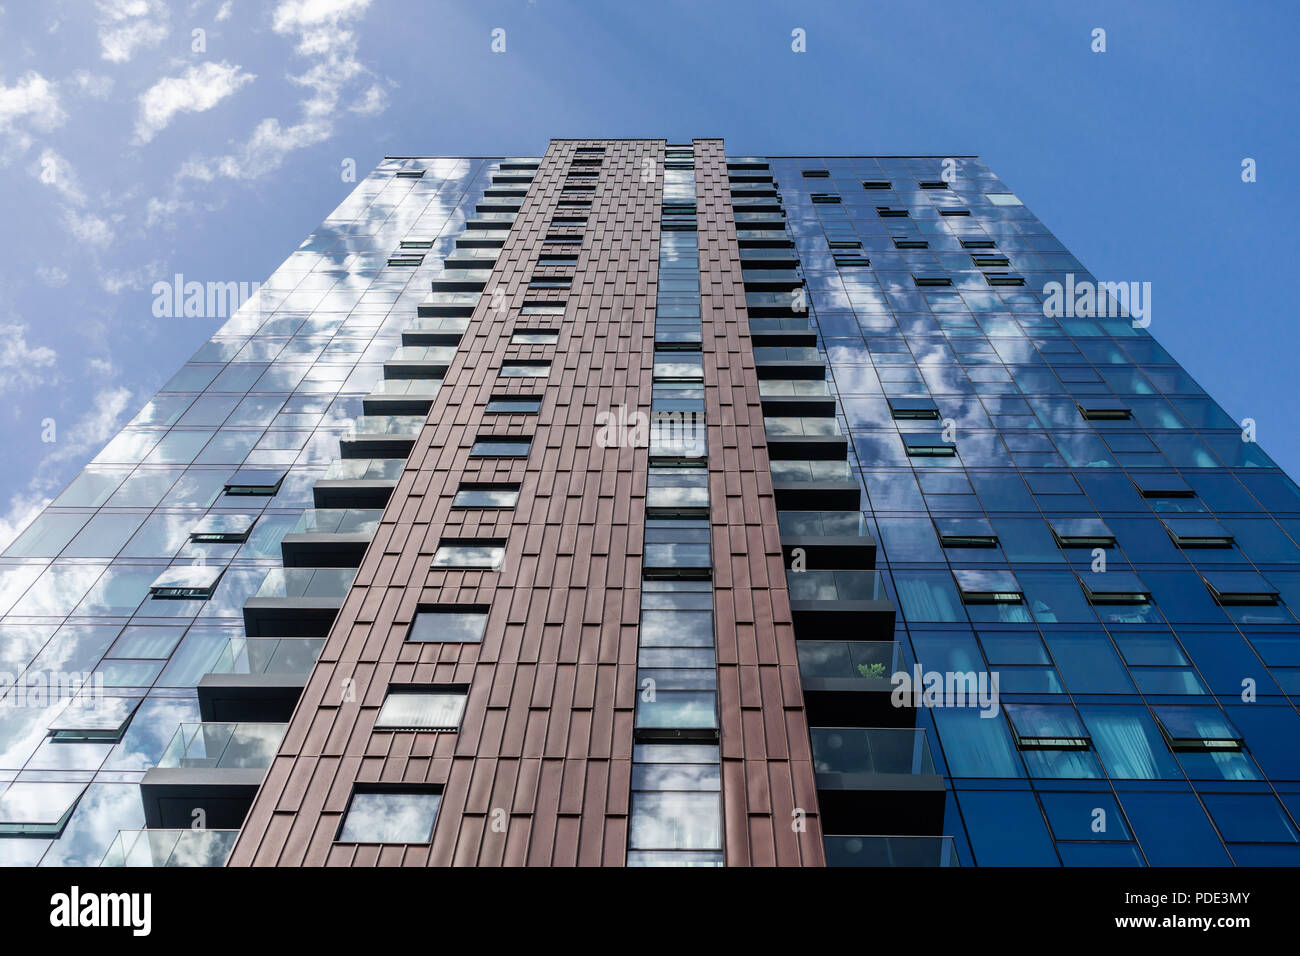 Abstract view of the MoresbyTower - a 24 storey high rise residential building offering luxury accommodation in Southampton, Hampshire, England, UK - Stock Image